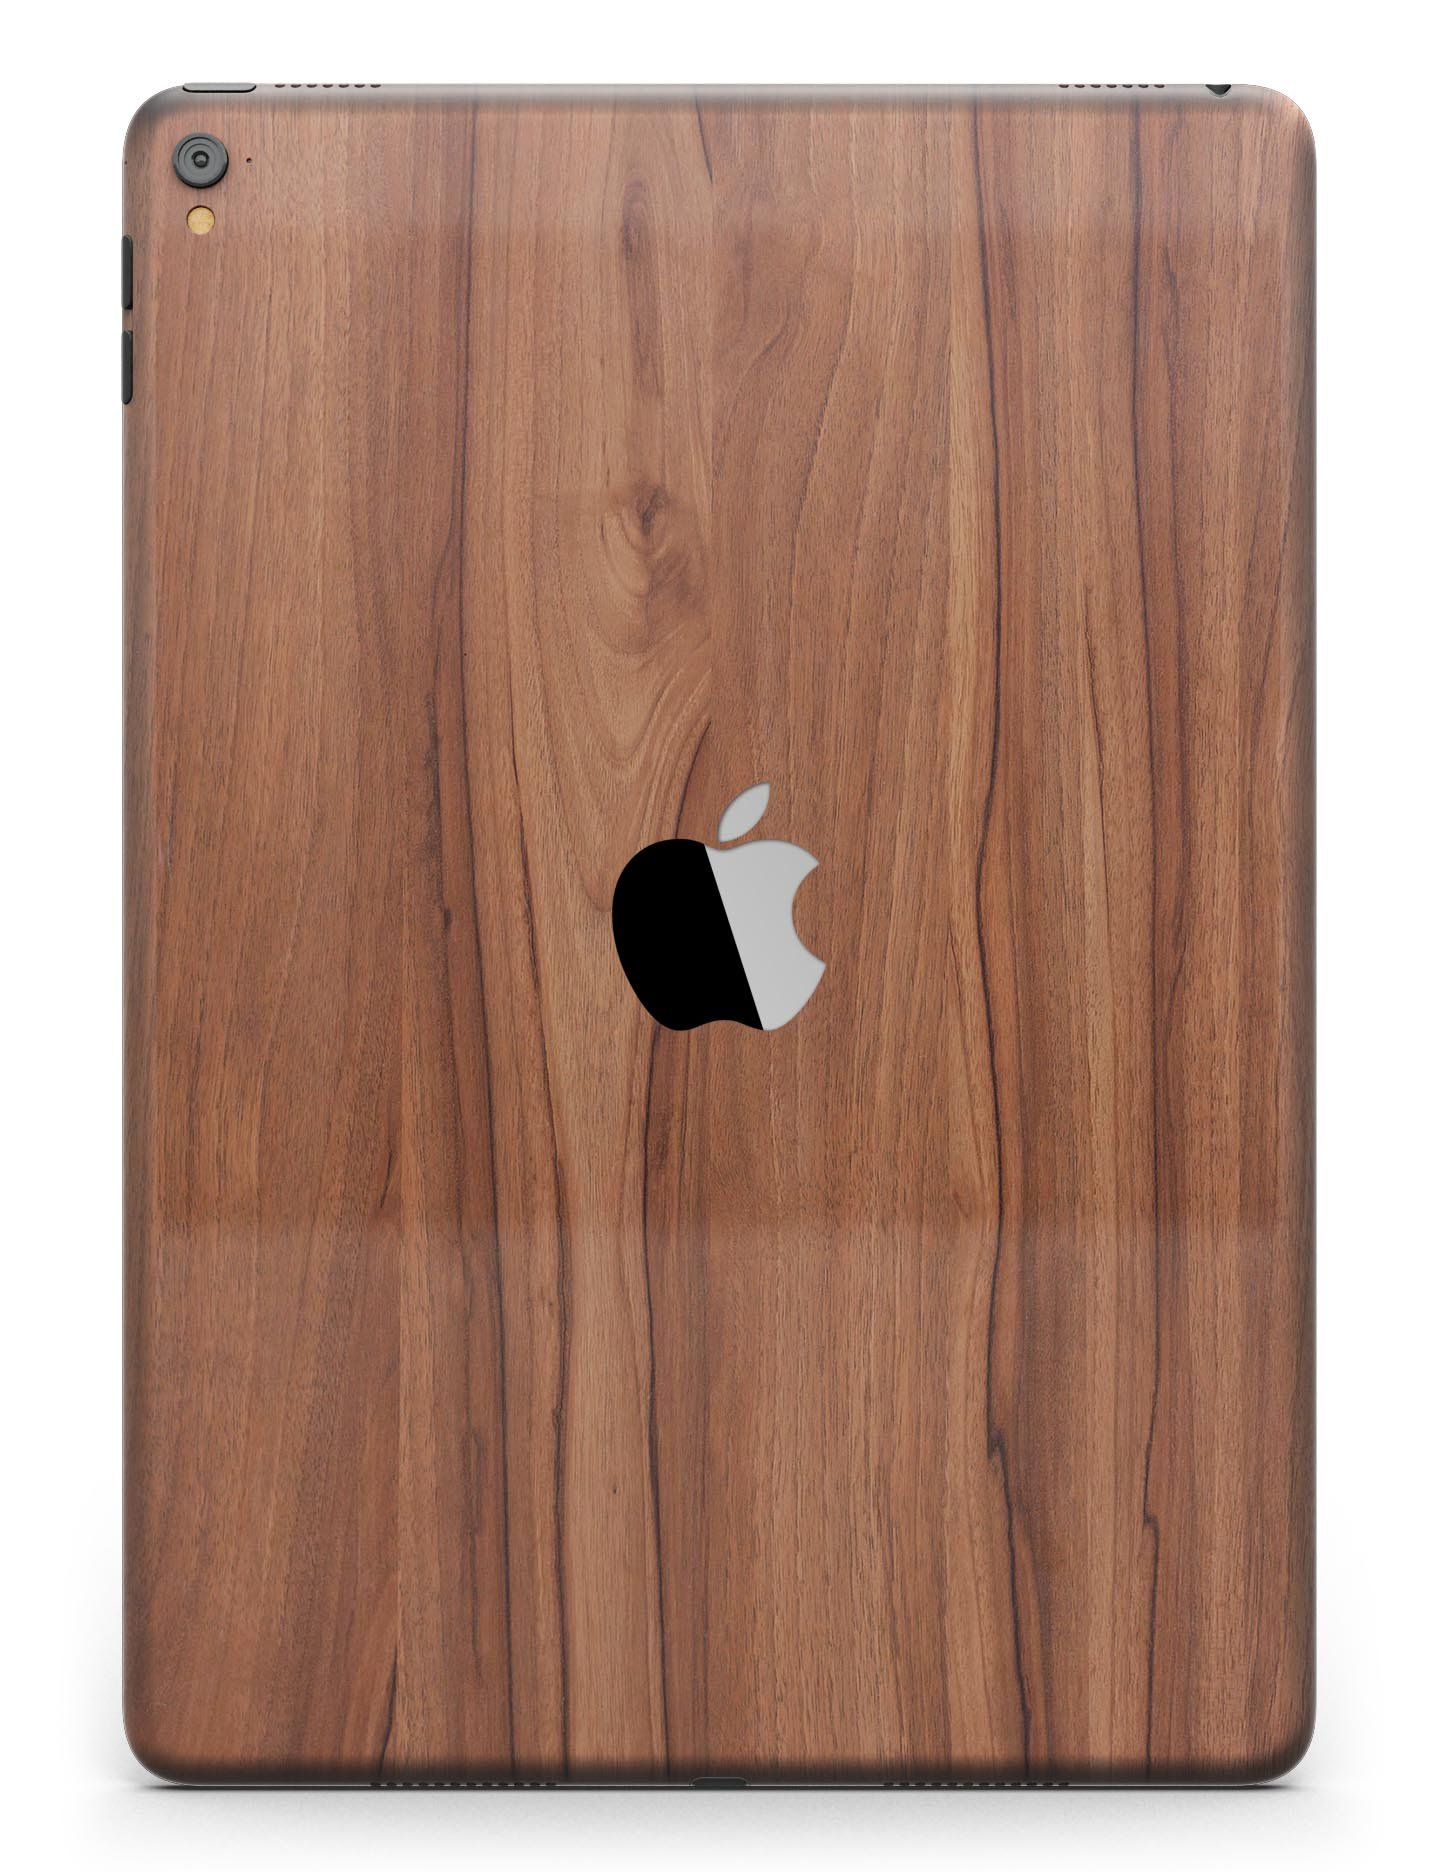 Wood Pattern Design Skinz Premium Full-Body Cover Wrap Decal Skin Kit for the Apple iPad Pro 10.5-inch (A1701/A1709) - Smooth-Grained Wooden Plank